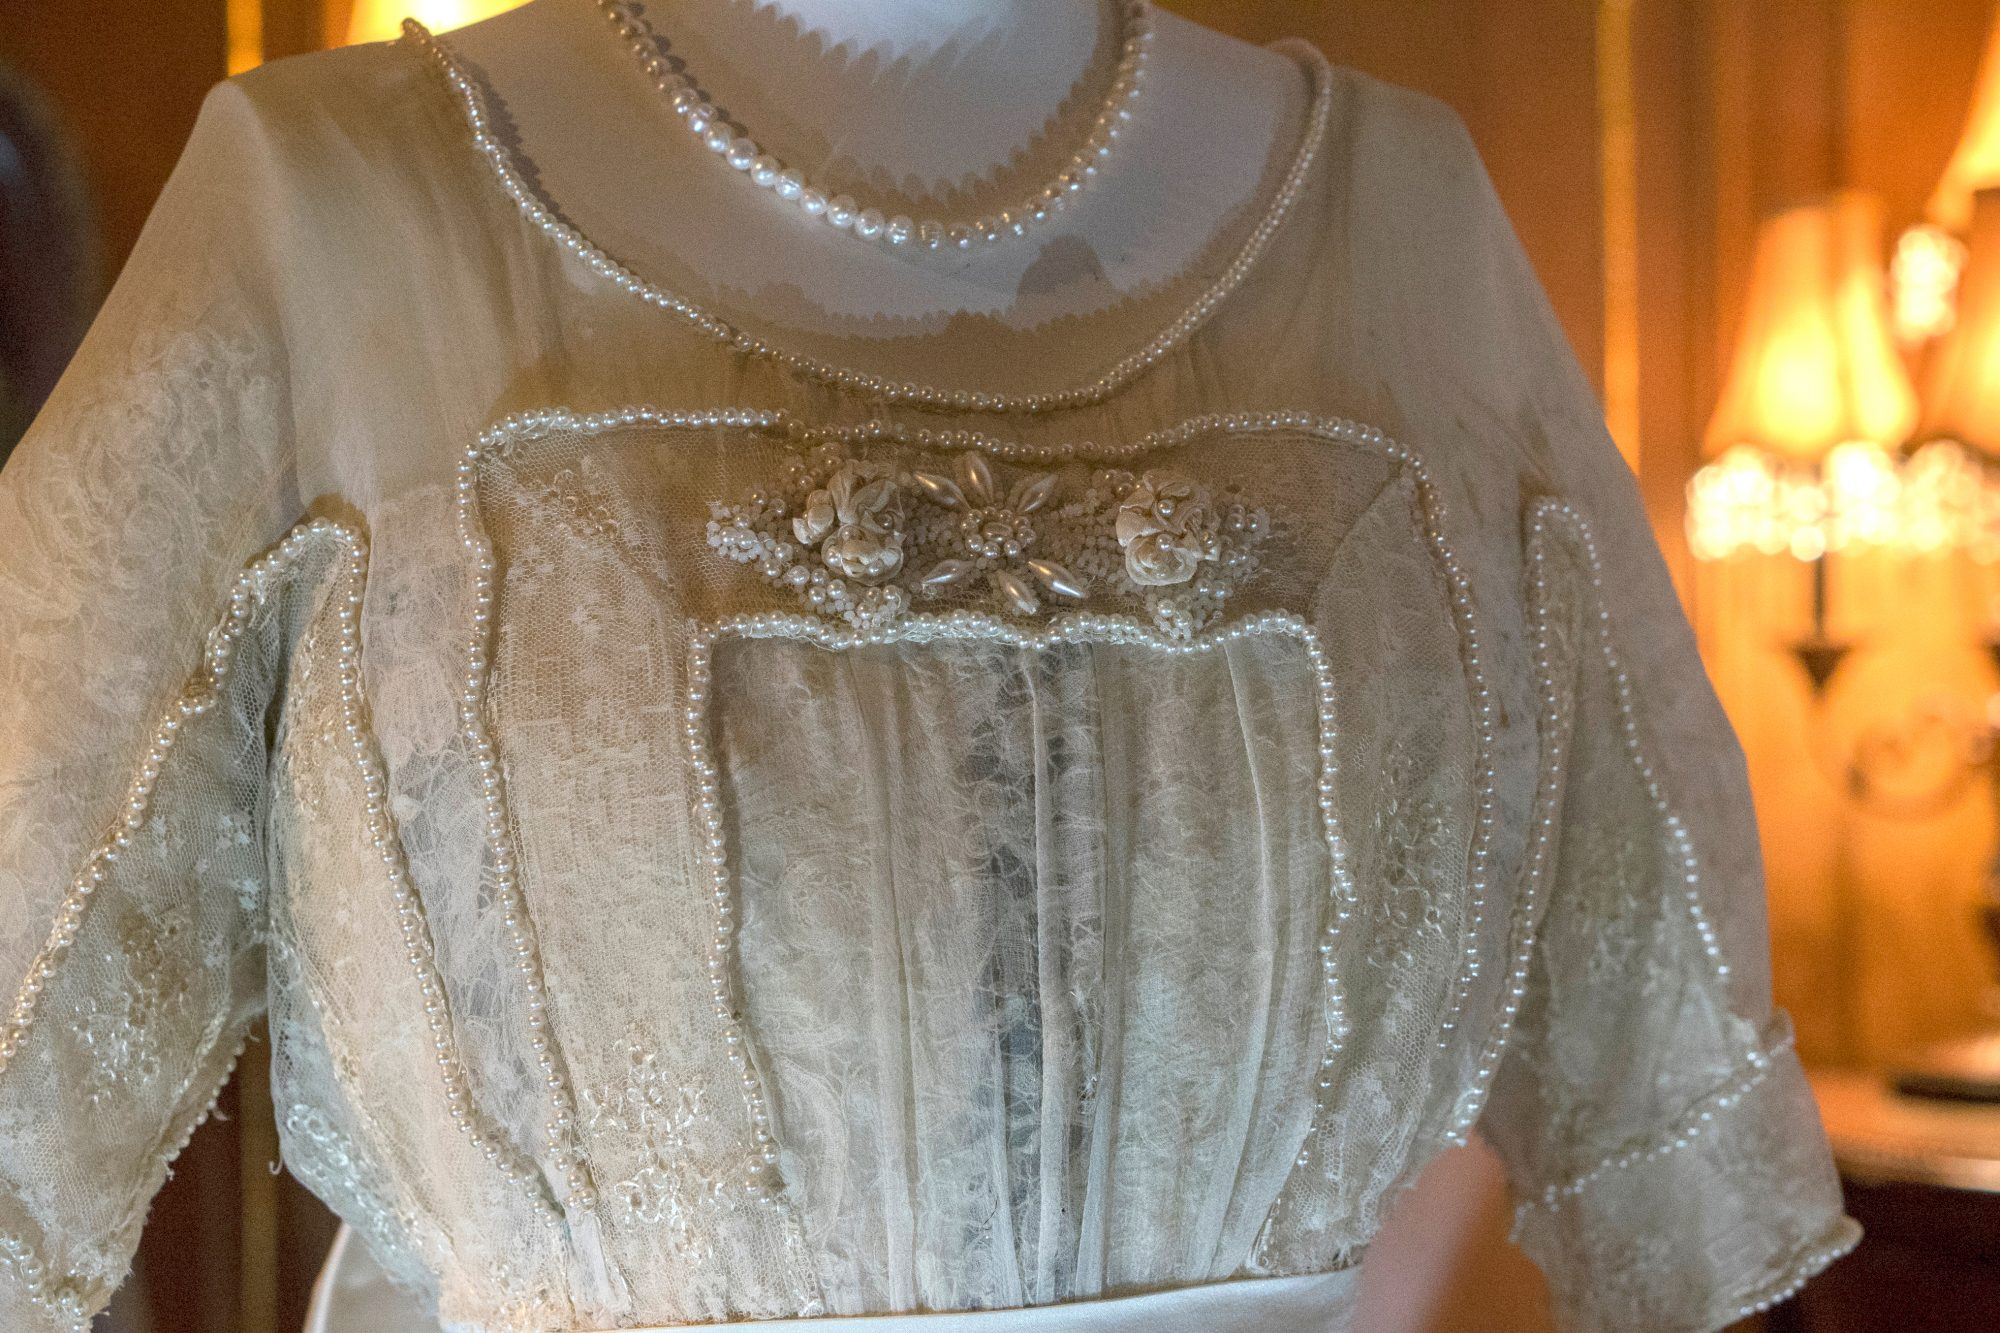 Lady Duff Gordon ivory Dress Details at Titanic Pigeon Forge